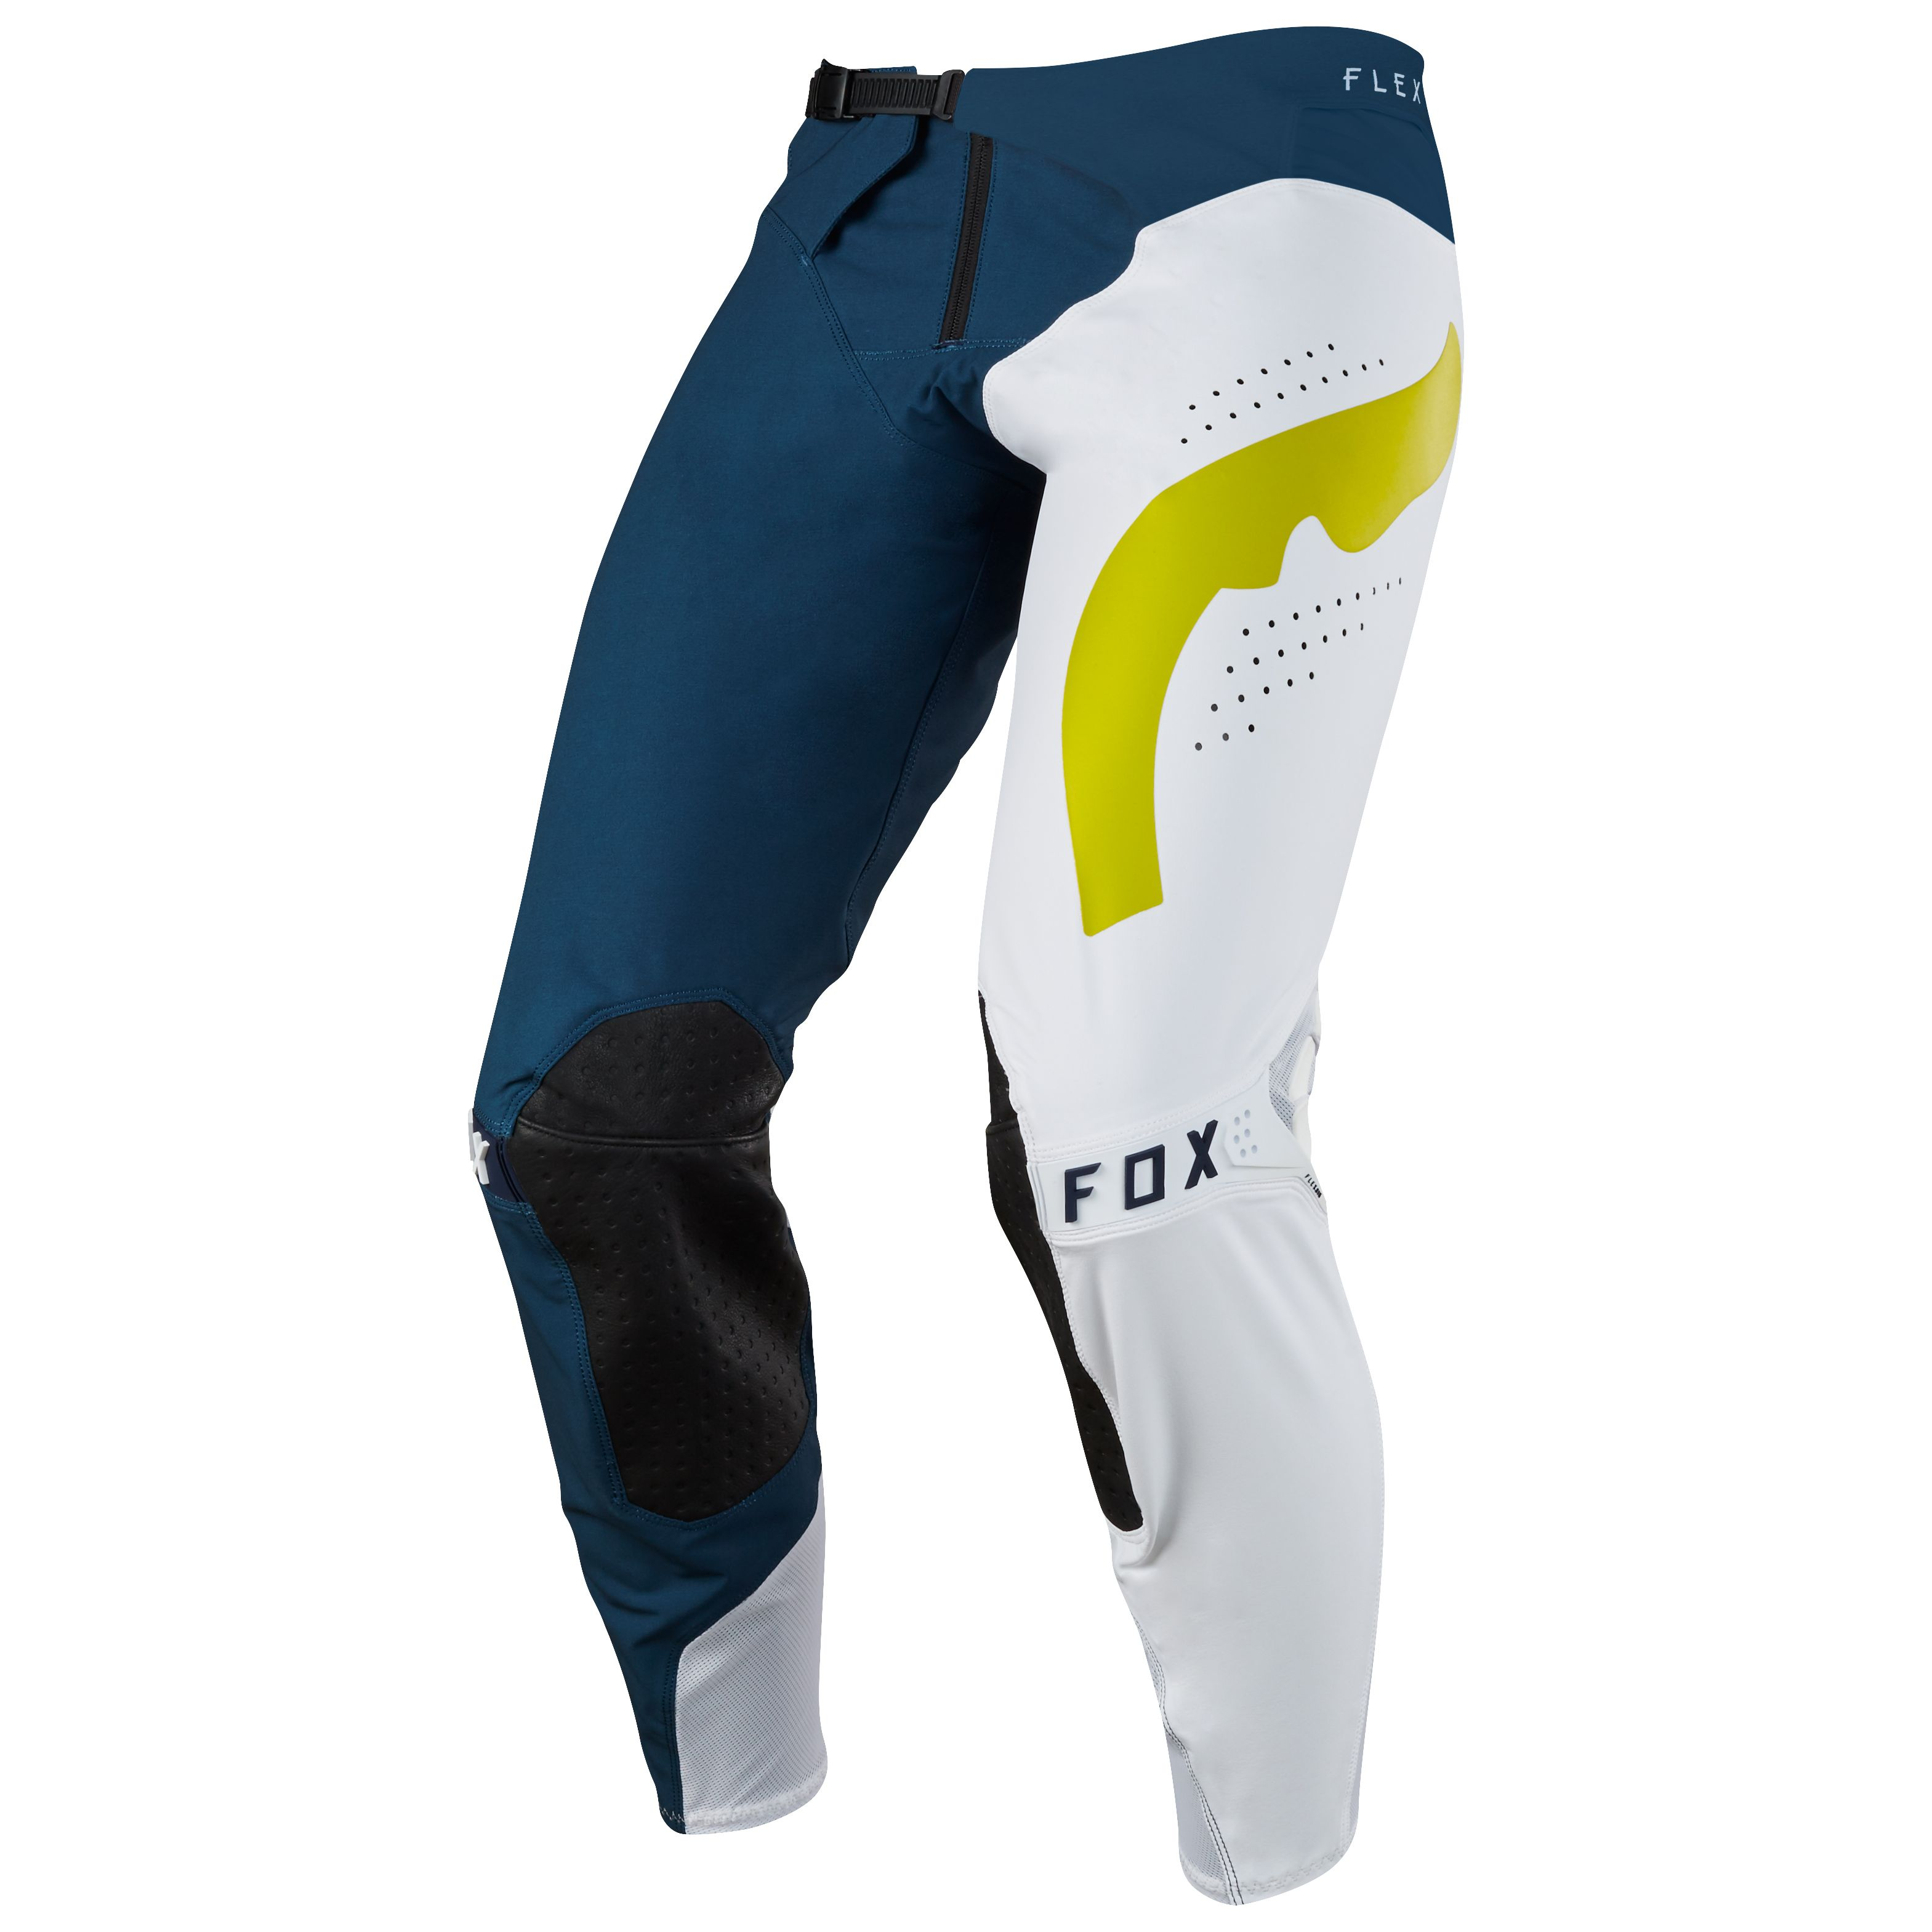 Pantalon cross Fox FLEXAIR HIFEYE - BLEU MARINE BLANC -  2018